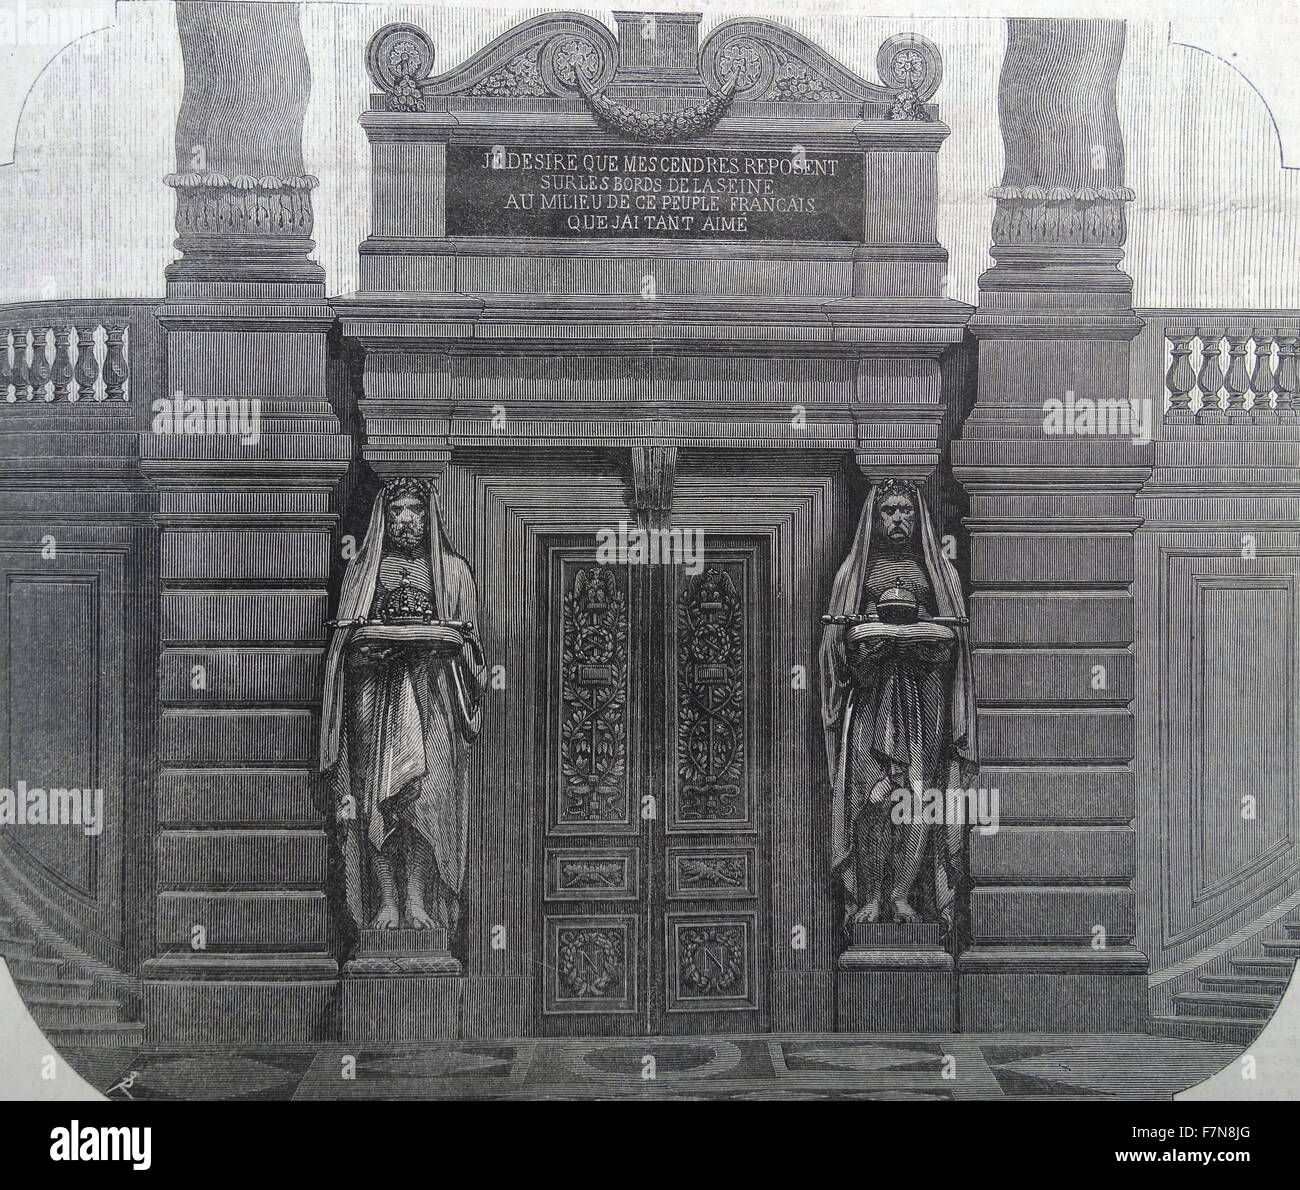 Illustration depicting the  tomb of Napoléon Bonaparte (1769-1821) within the Invalides, France. Dated 1822 - Stock Image